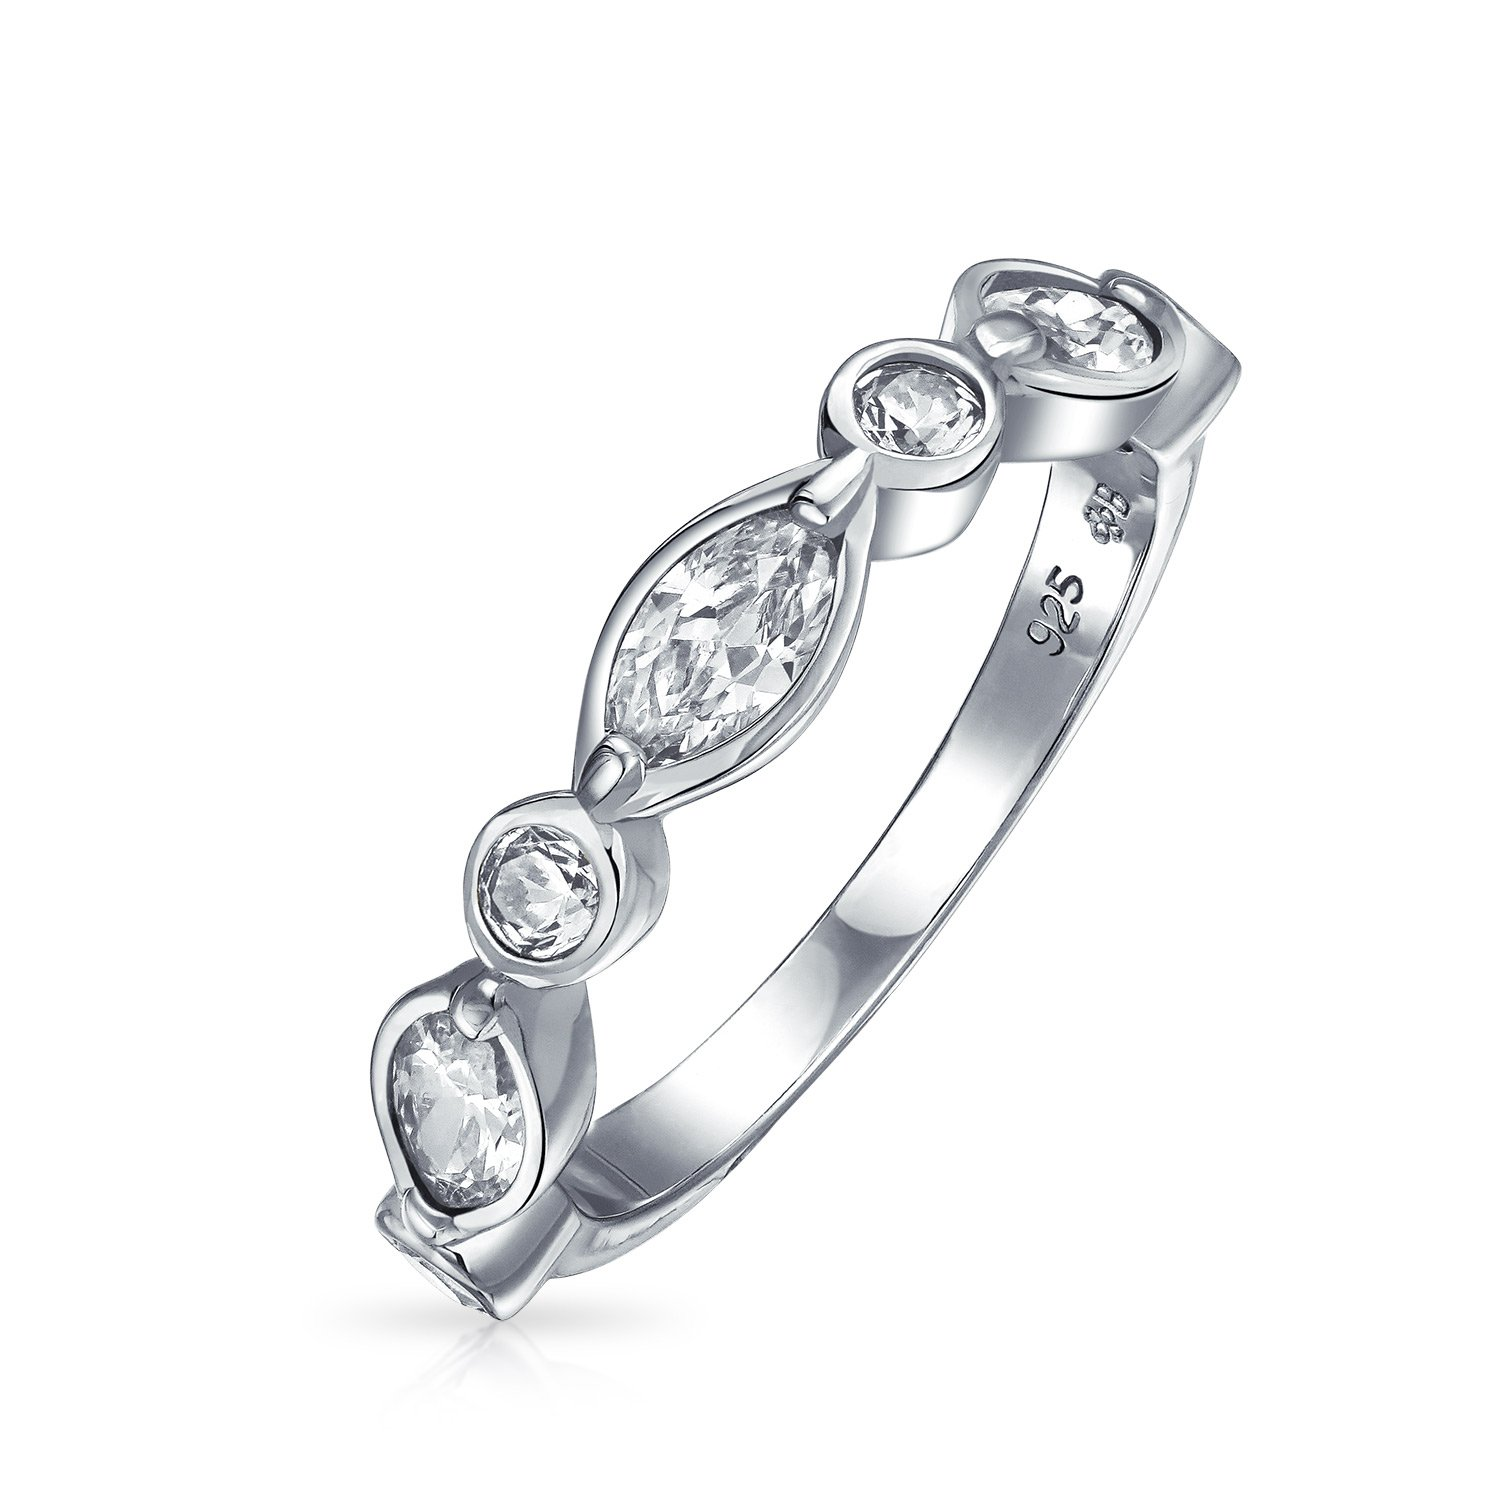 Bridal Vintage Style Band Round Marquise CZ Ring 925 Silver by Bling Jewelry